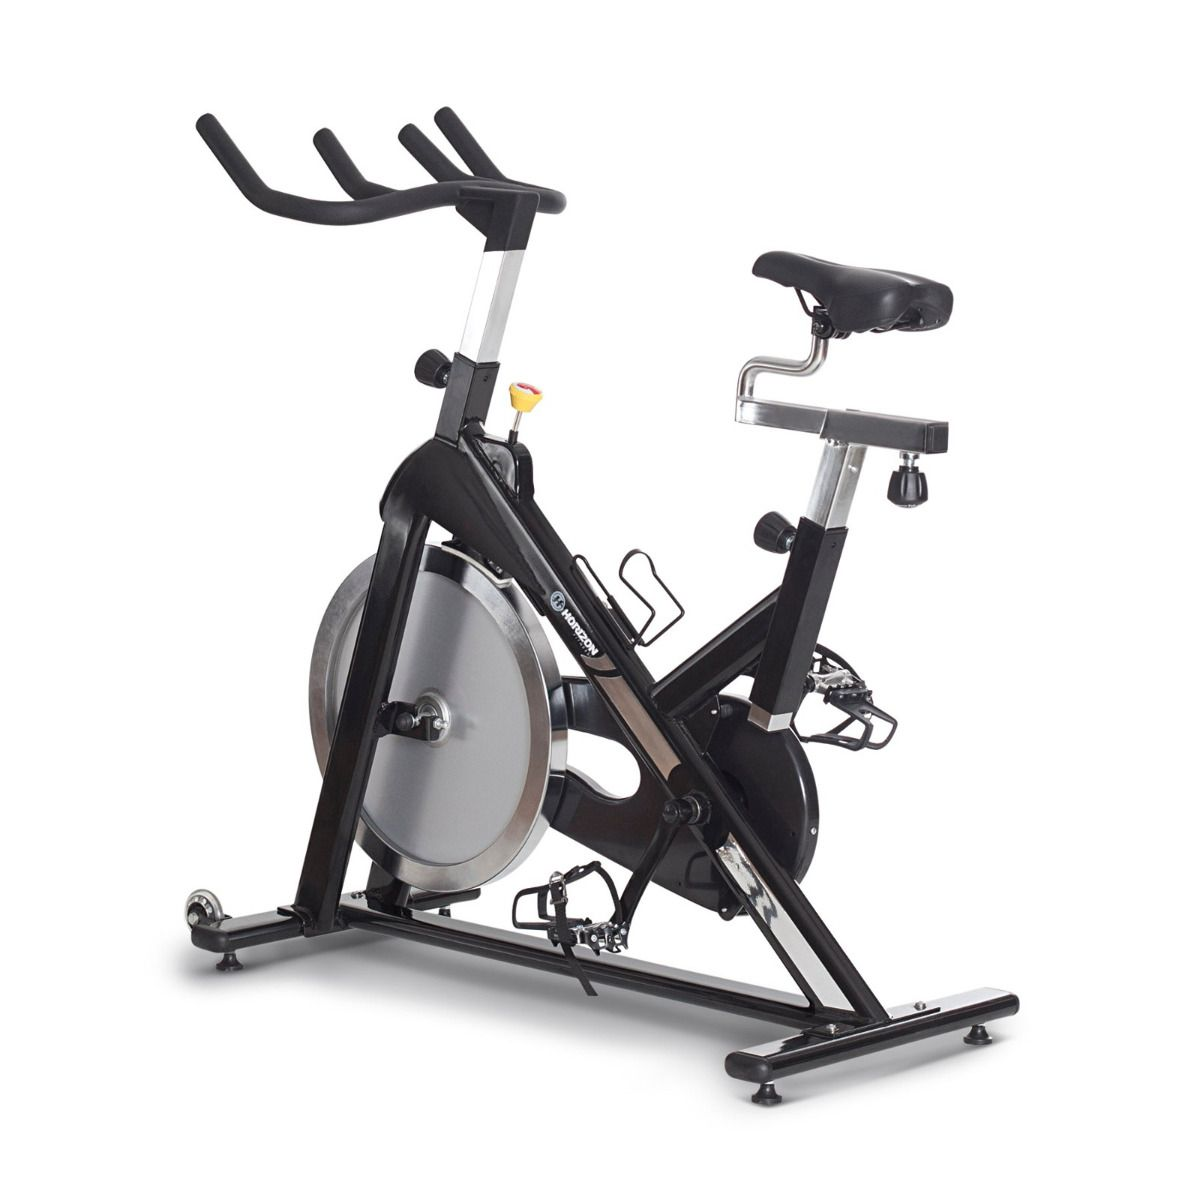 Xe P Th Thao Trong Nh Horizon S3 Sportsland Jk Exer Nuwave 2136 Eliptical Trainer